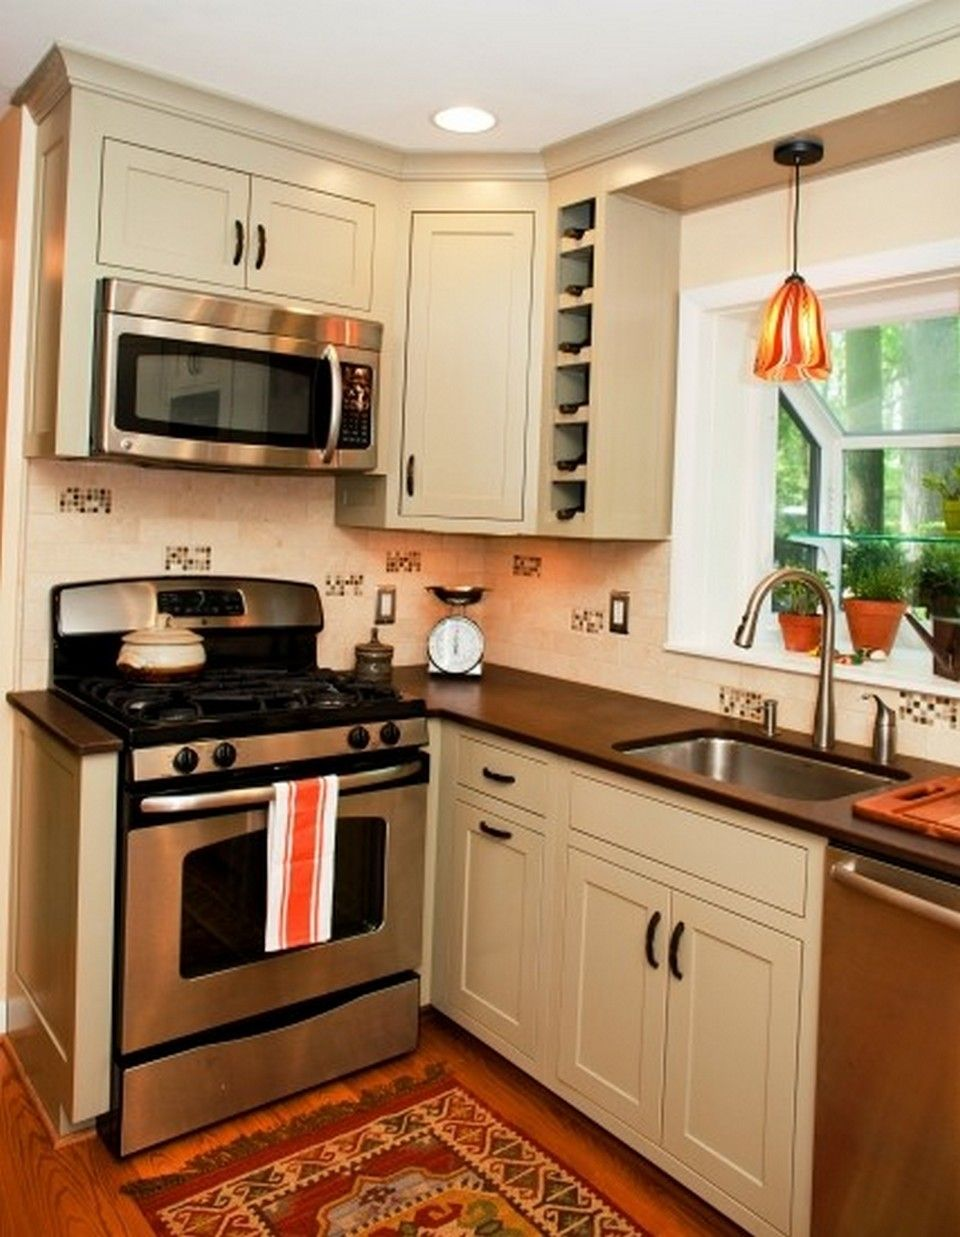 Kitchen Cabinet Remodel Ideas: 99+ Small Kitchen Remodel And Amazing Storage Hacks On A